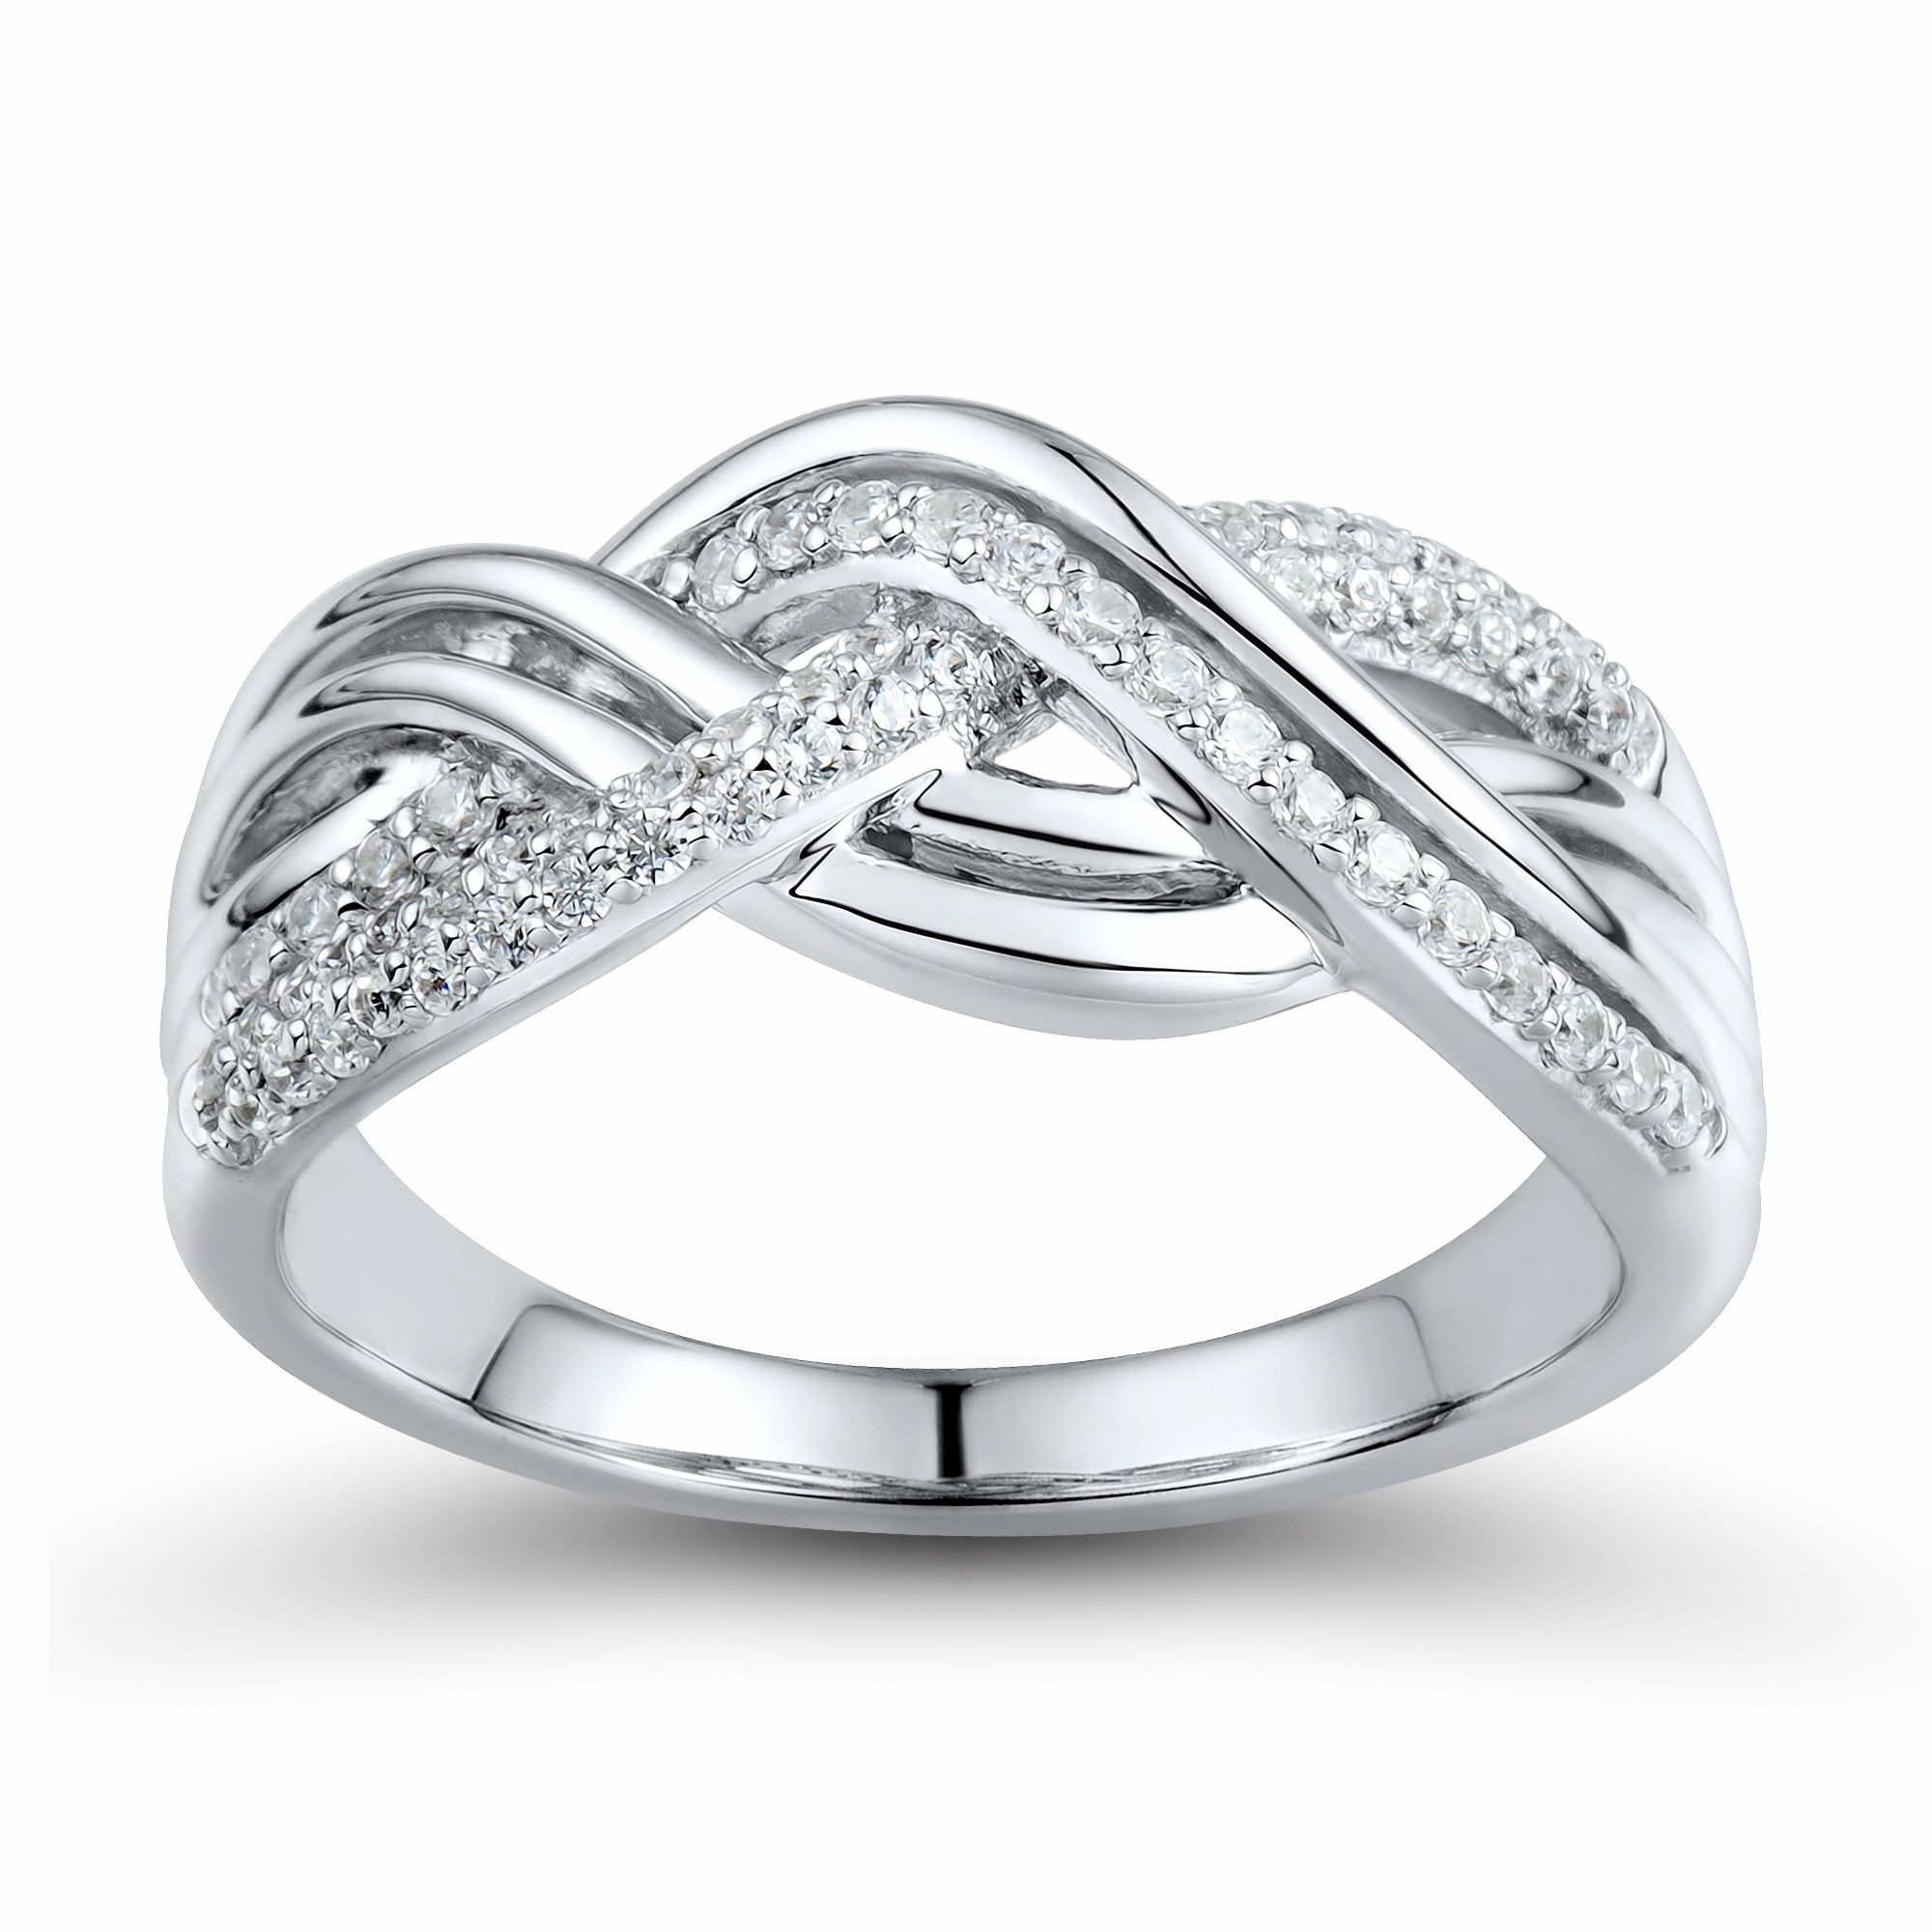 forever brands generations wedding fbpl designed m online bands jewellery band ring platinum shop for gents index sky